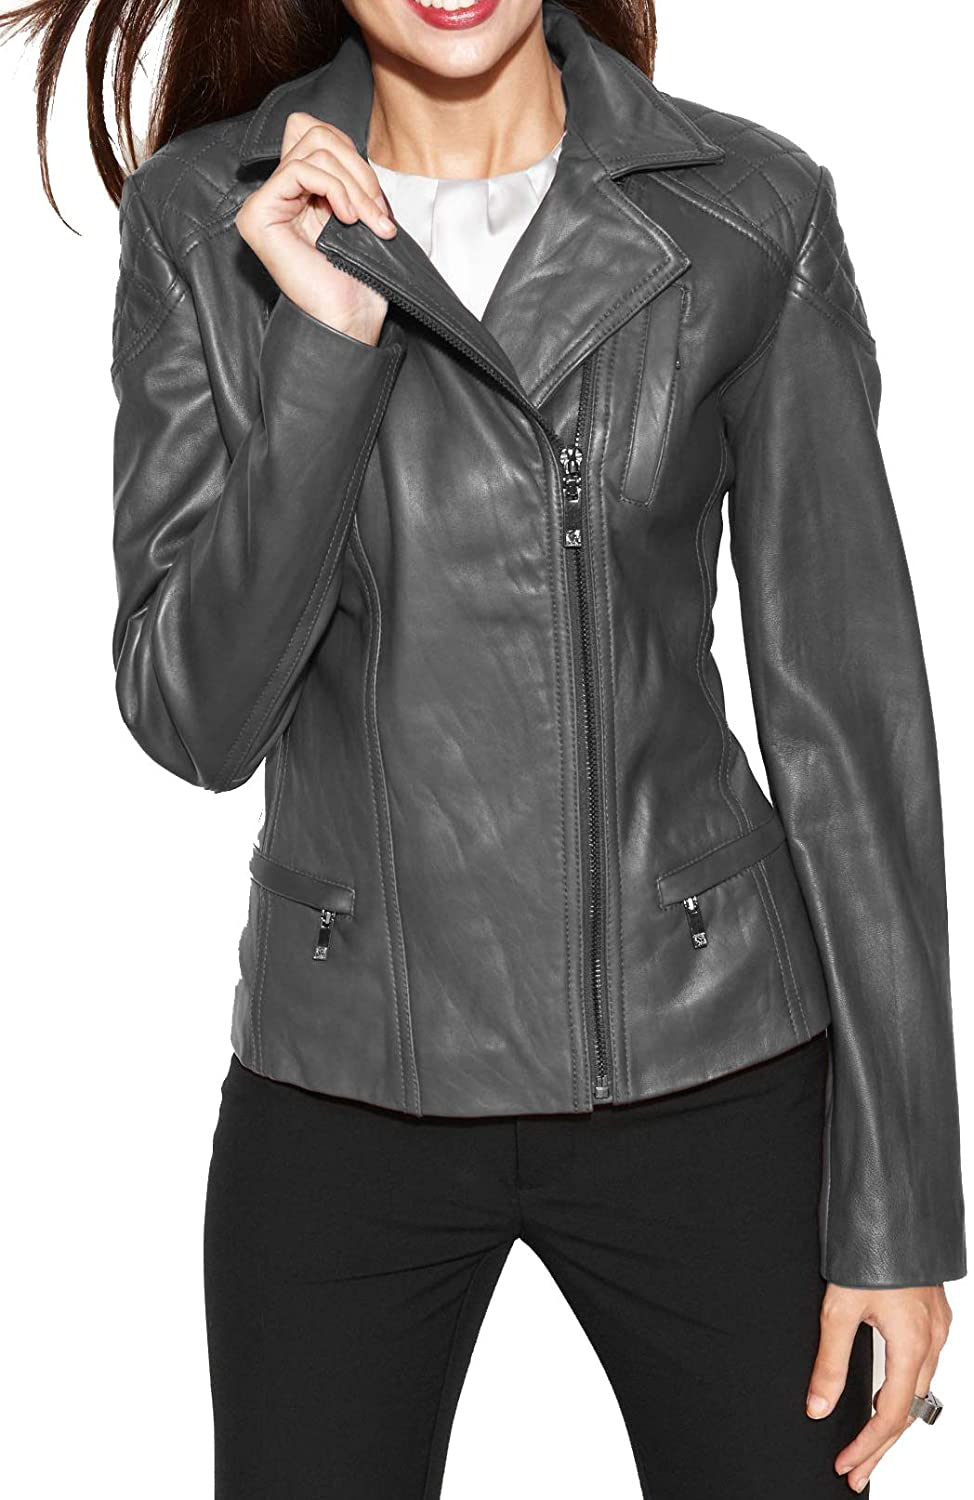 SKINOUTFIT Women's Leather Jacket Stylish Motorcycle Biker Genuine Lambskin 80